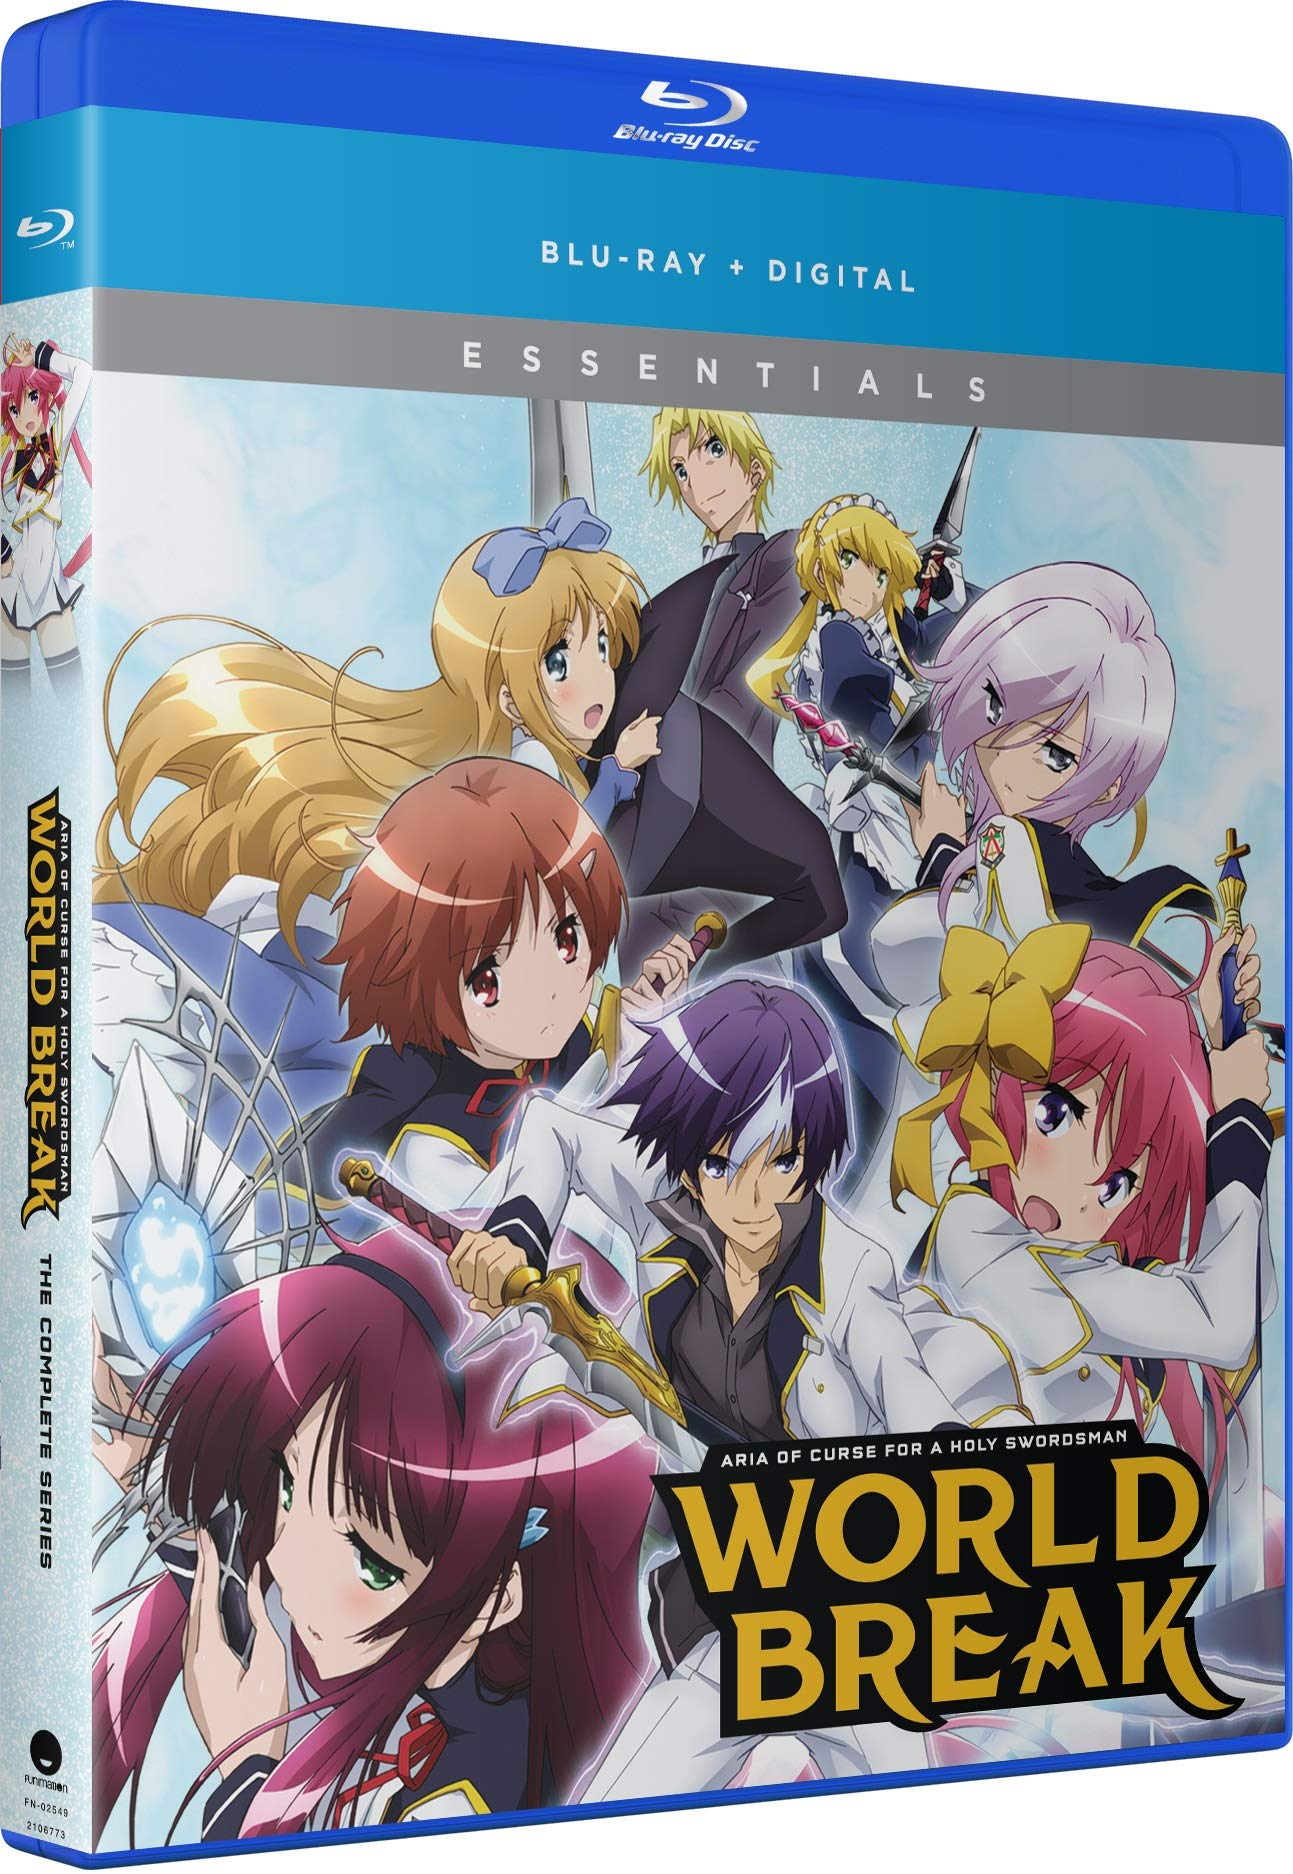 Blu-ray : World Break: Aria Of Curse For A Holy Swordsman - Complete Series -essentials (Uncut, Subtitled, Slipsleeve Packaging, Snap Case, Digital Copy)